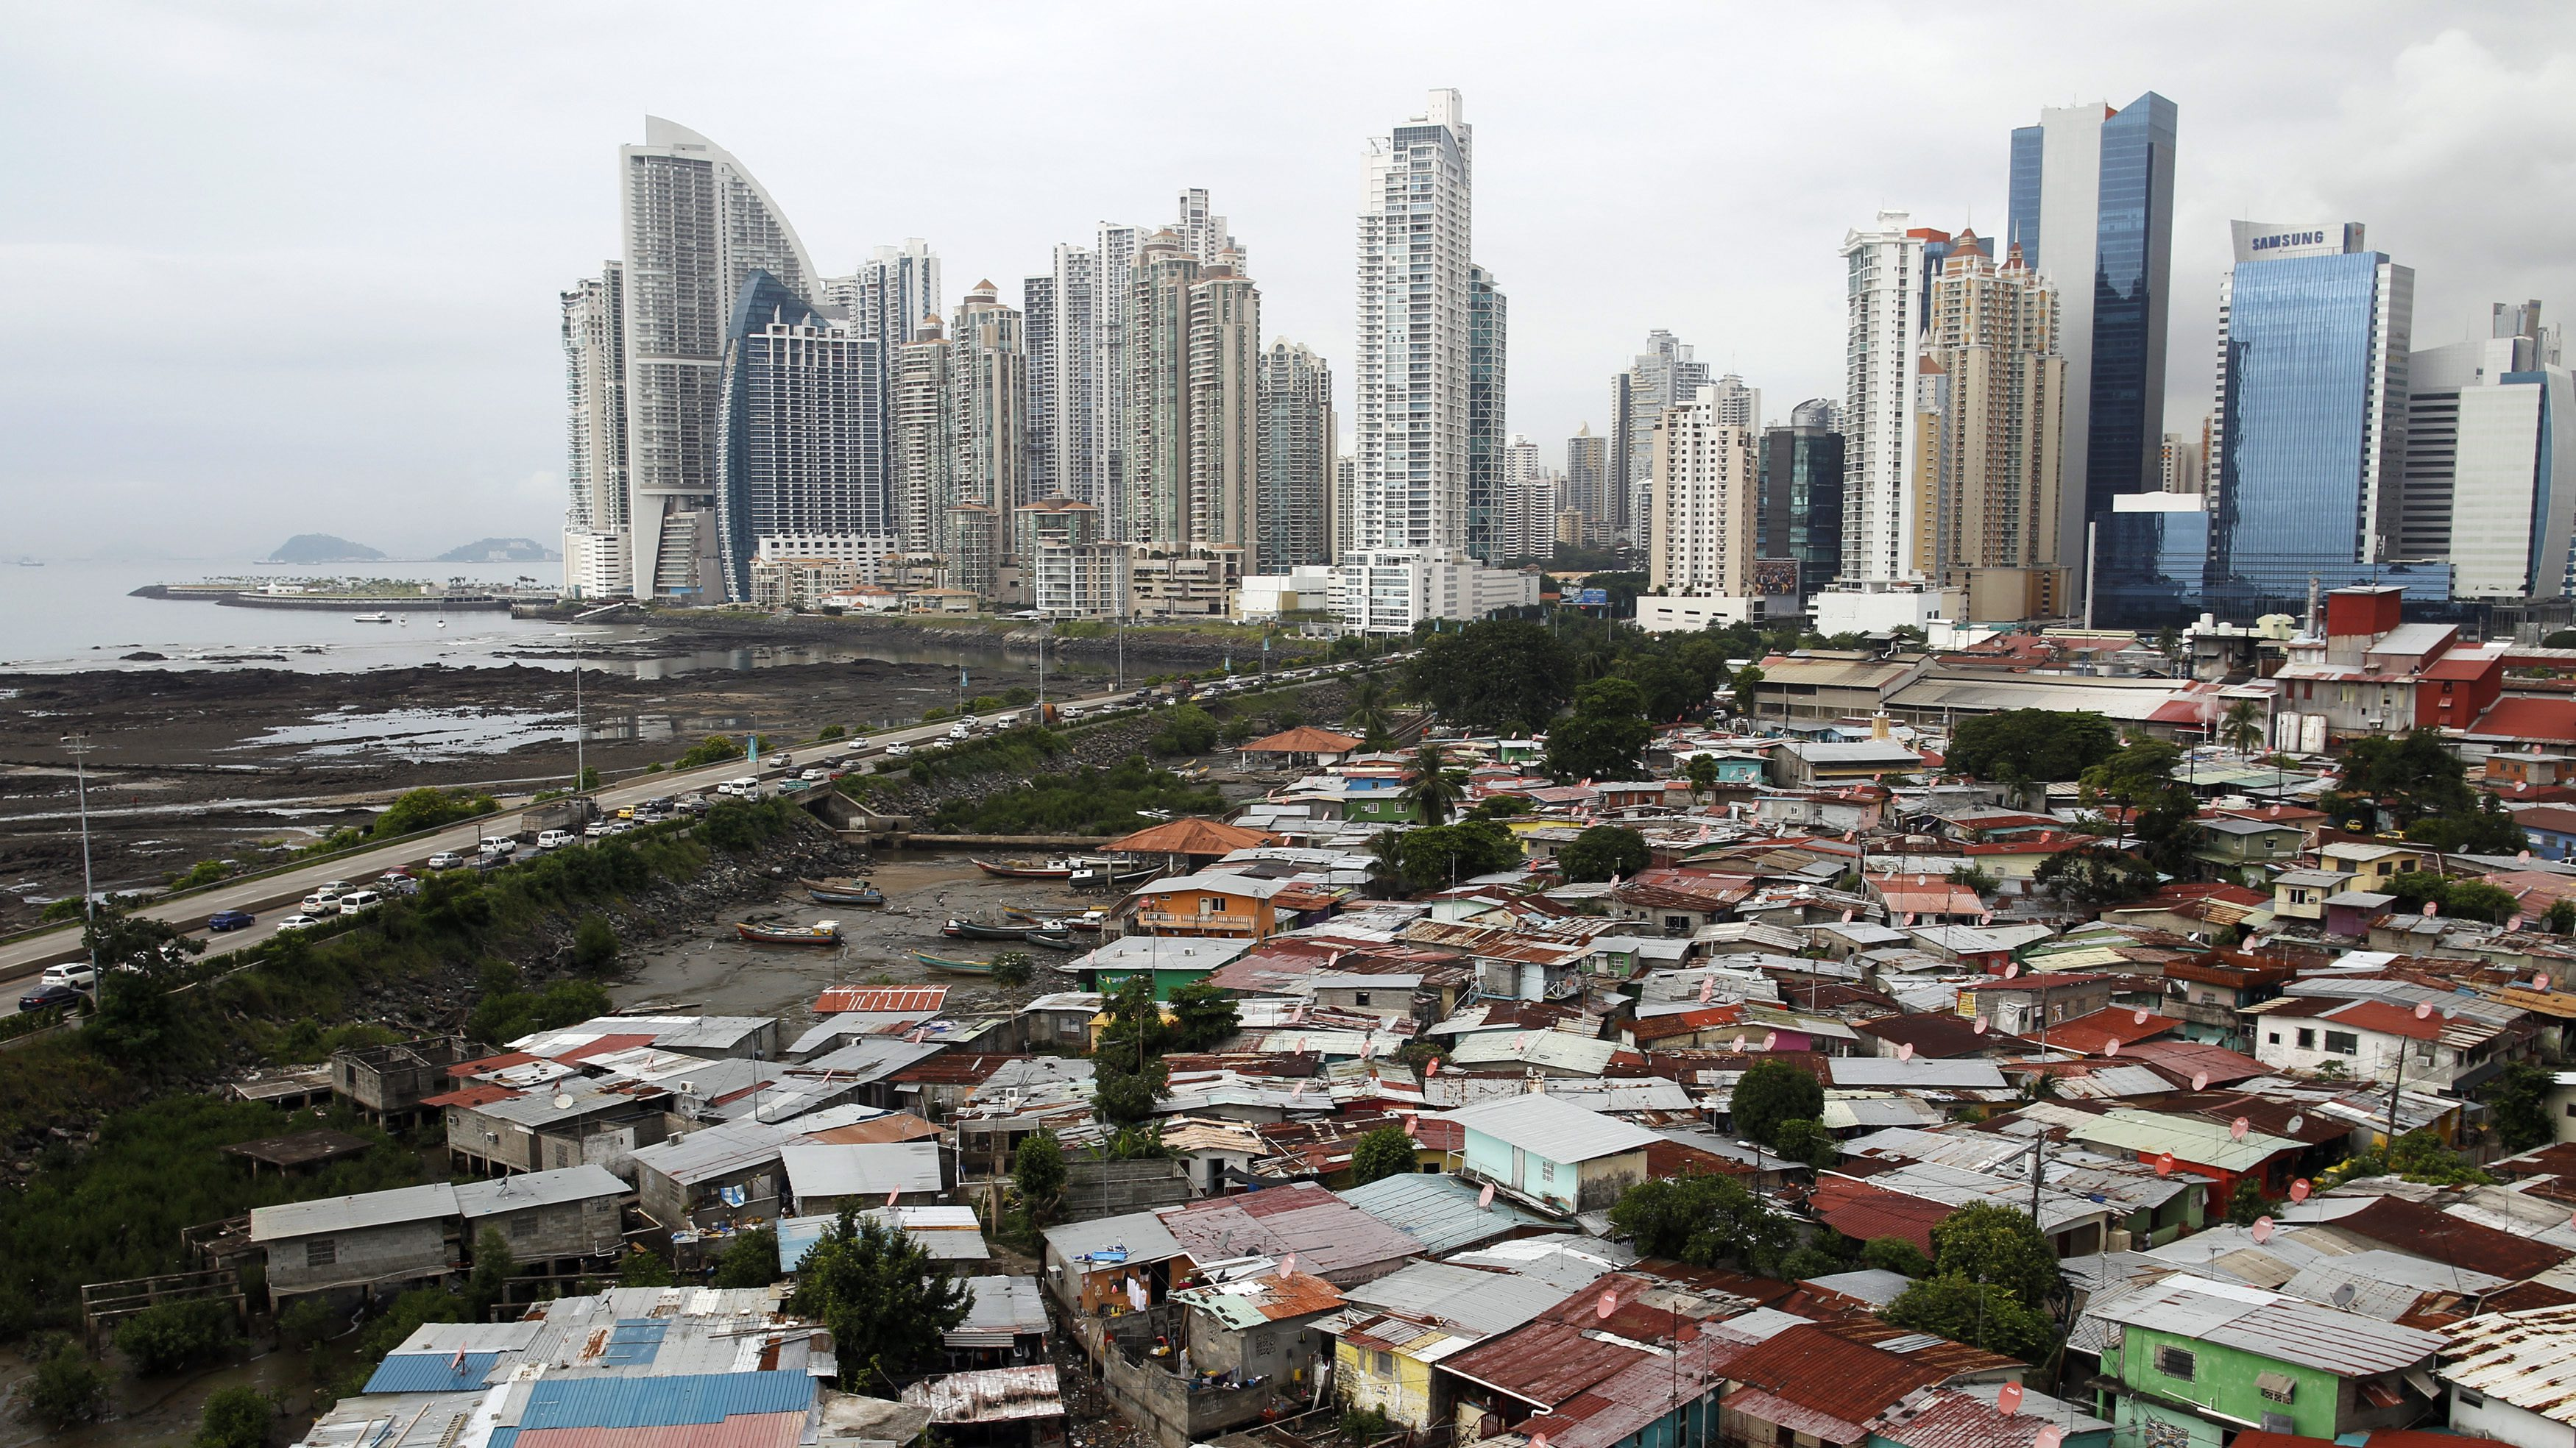 A general view of the low-income neighborhood known as Boca la Caja next to the business district in Panama City September 17, 2013. REUTERS/Carlos Jasso (PANAMA - Tags: SOCIETY CITYSCAPE) - RTX13P7O